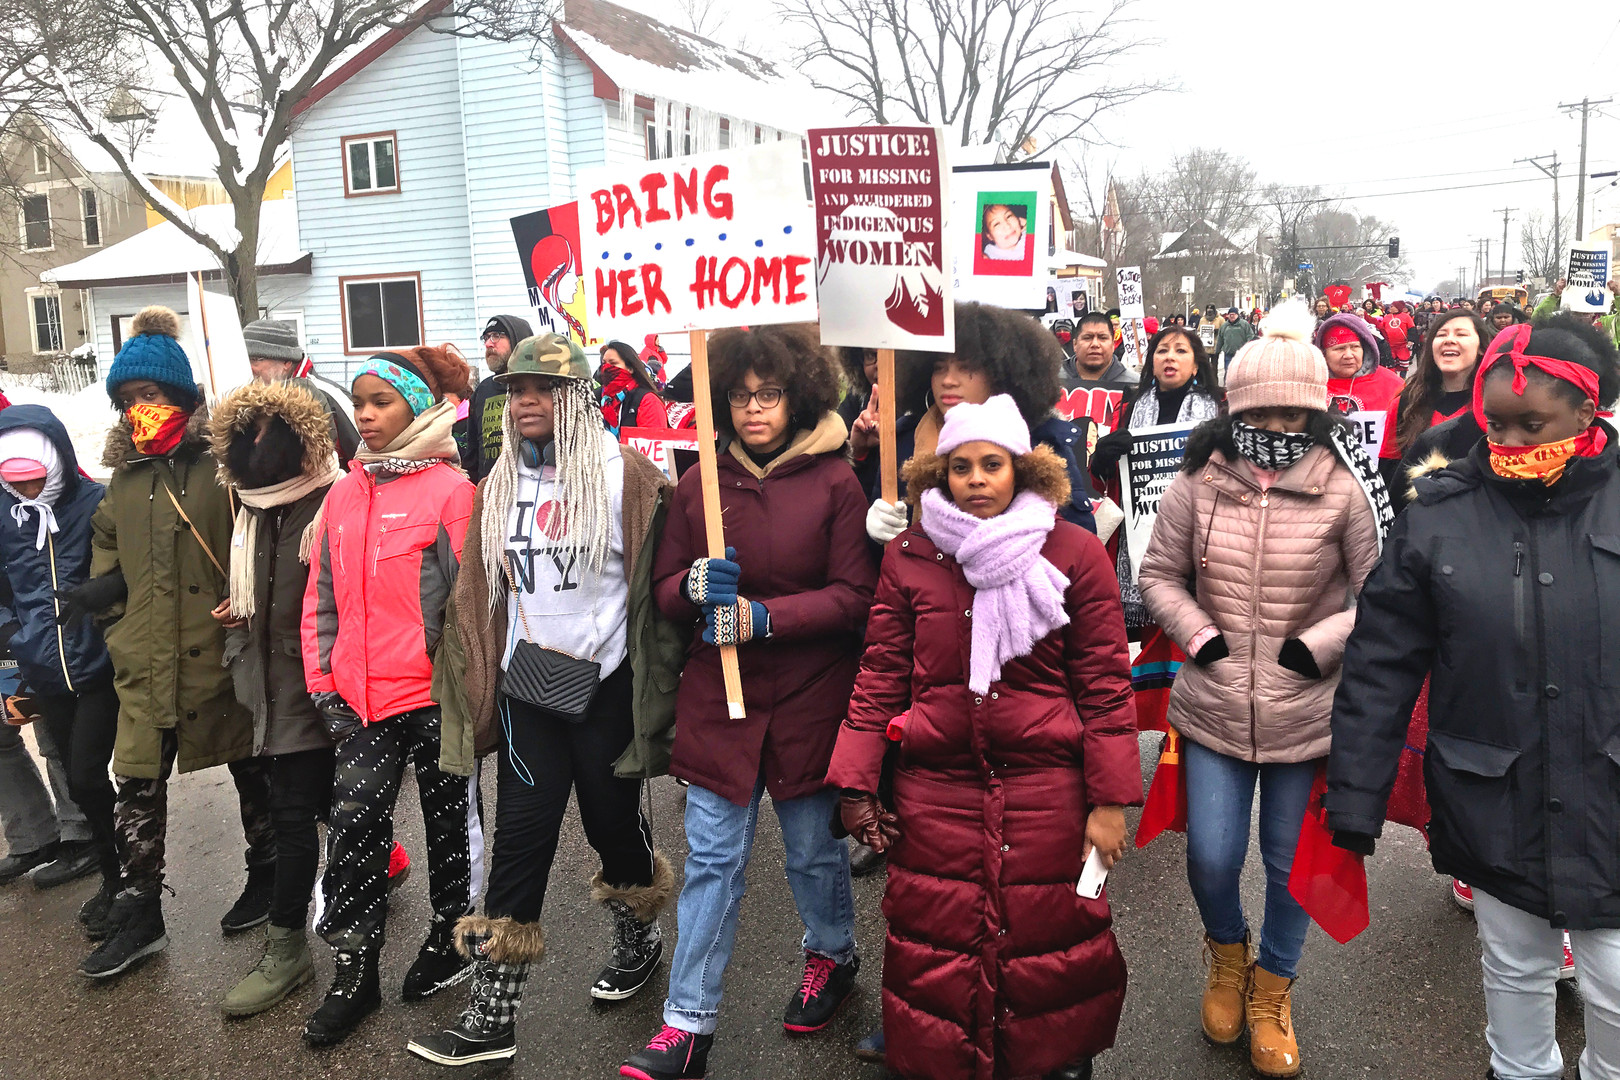 March for Missing _ Murdered Indigenous